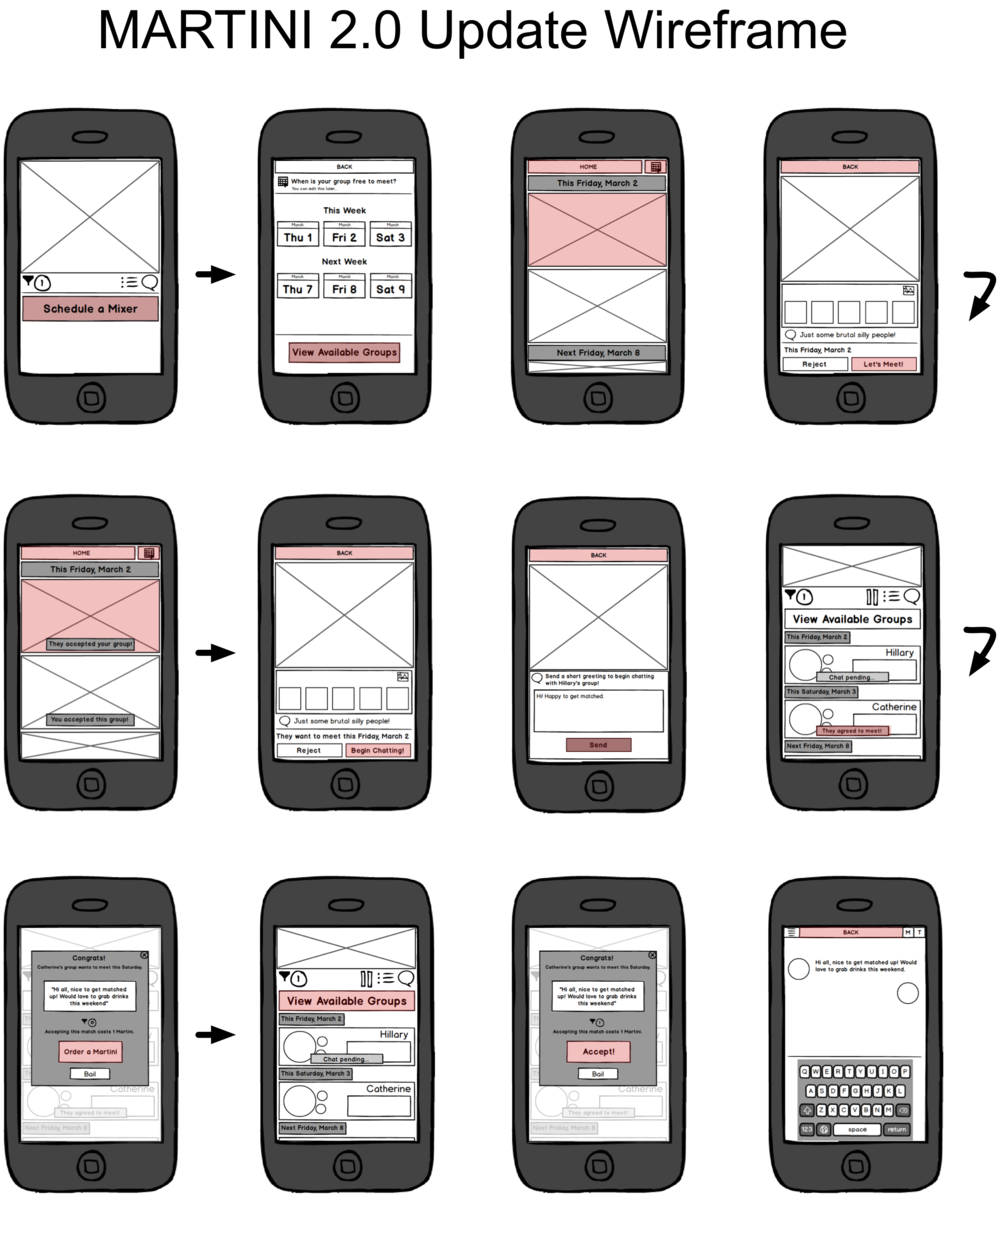 MARTINI 2.0 Update Wireframes